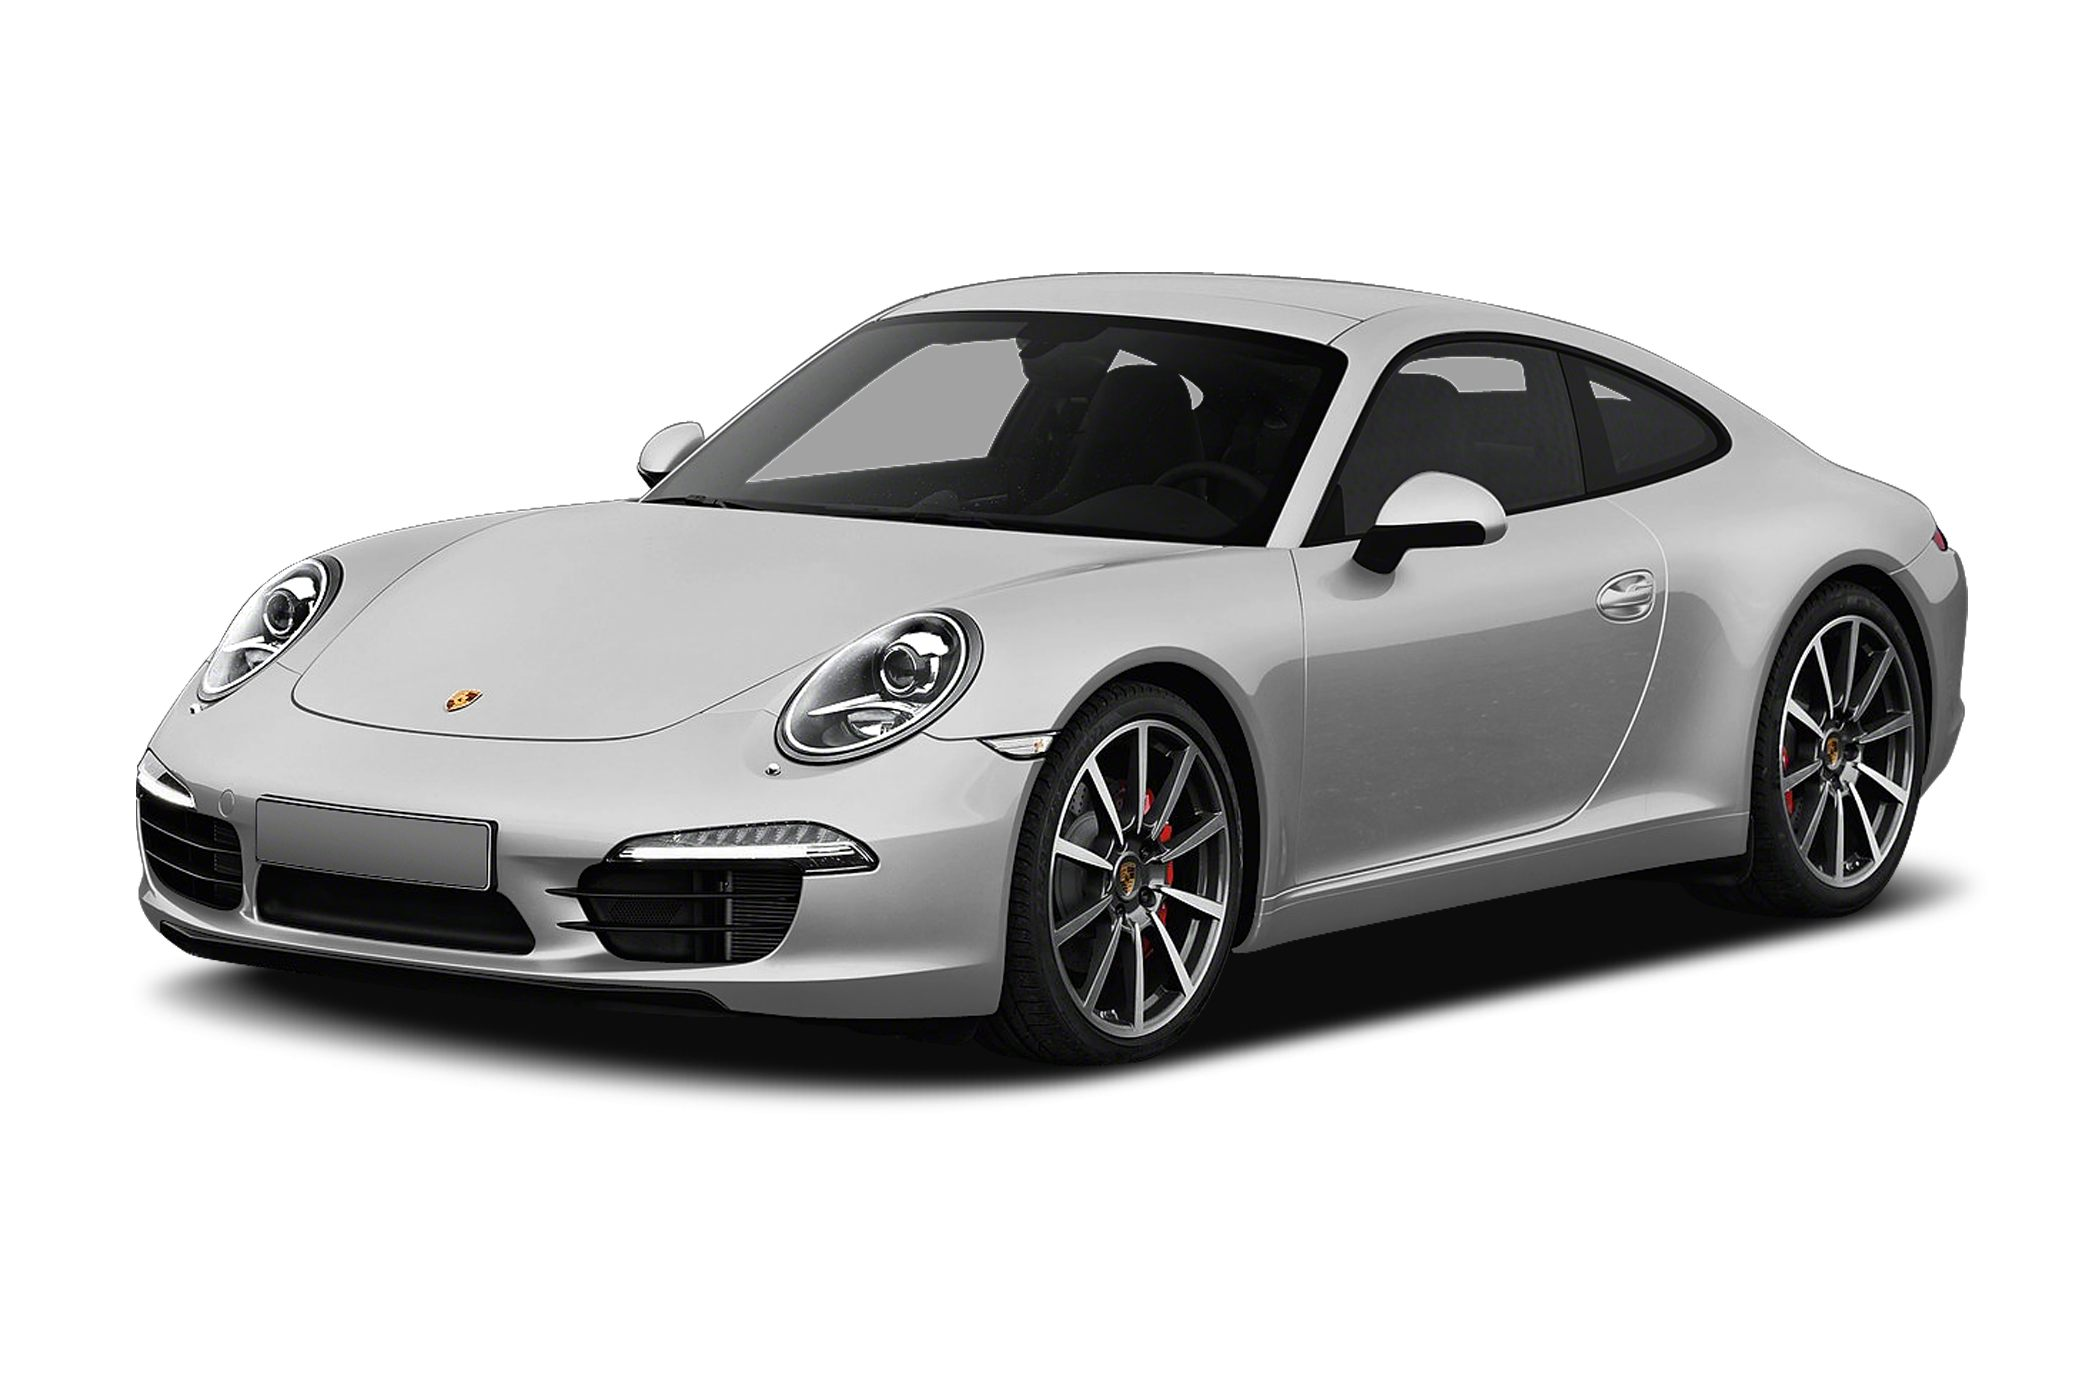 2012 Porsche 911 Carrera S Coupe for sale in Sacramento for $86,000 with 4,370 miles